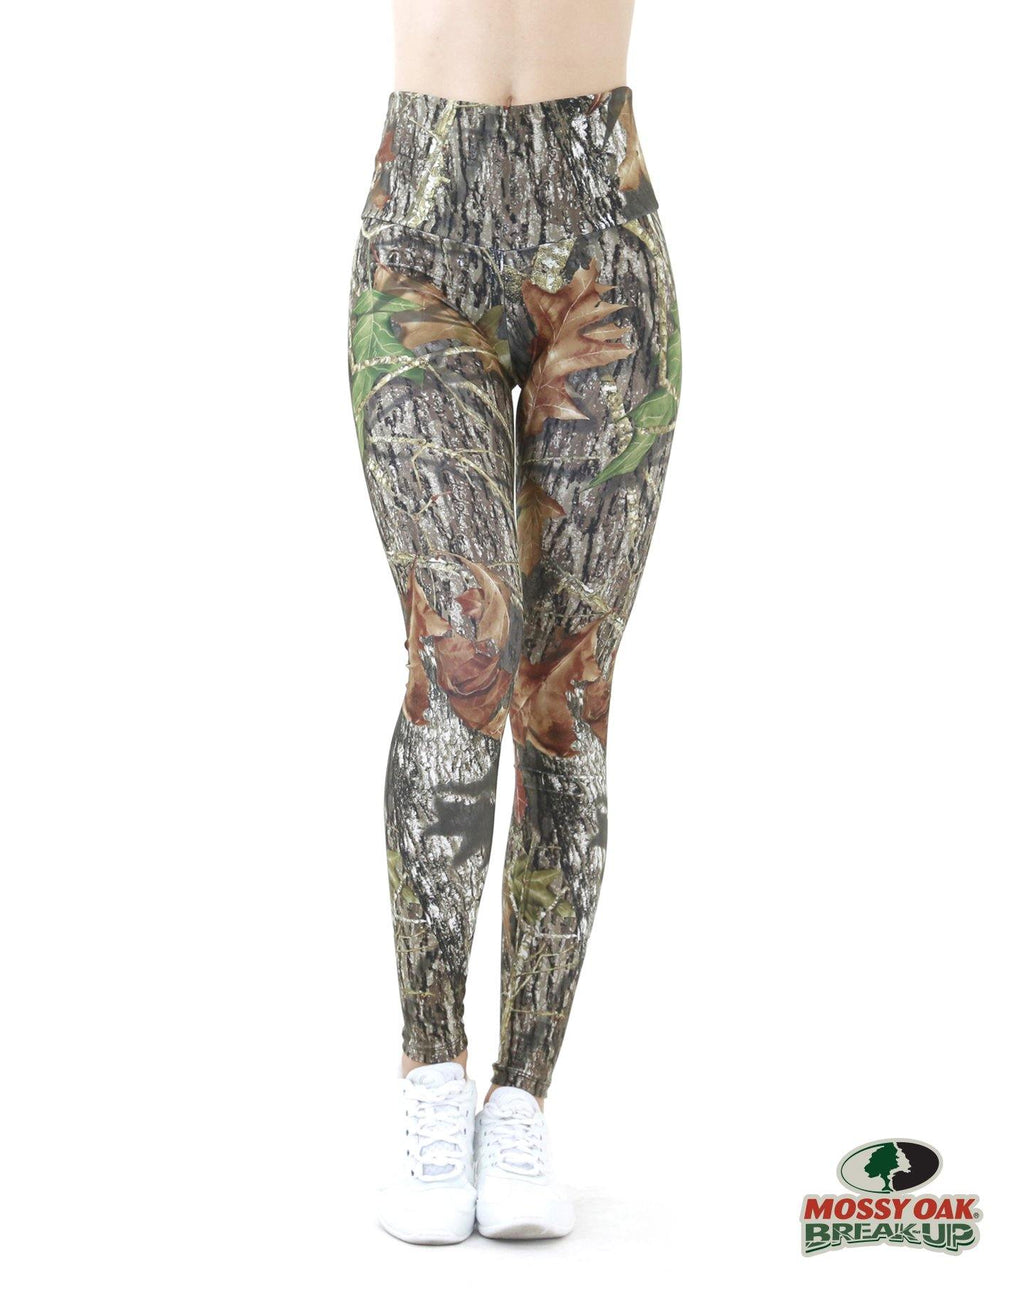 Apsara Leggings High Waist Full Length, Mossy Oak Break-Up